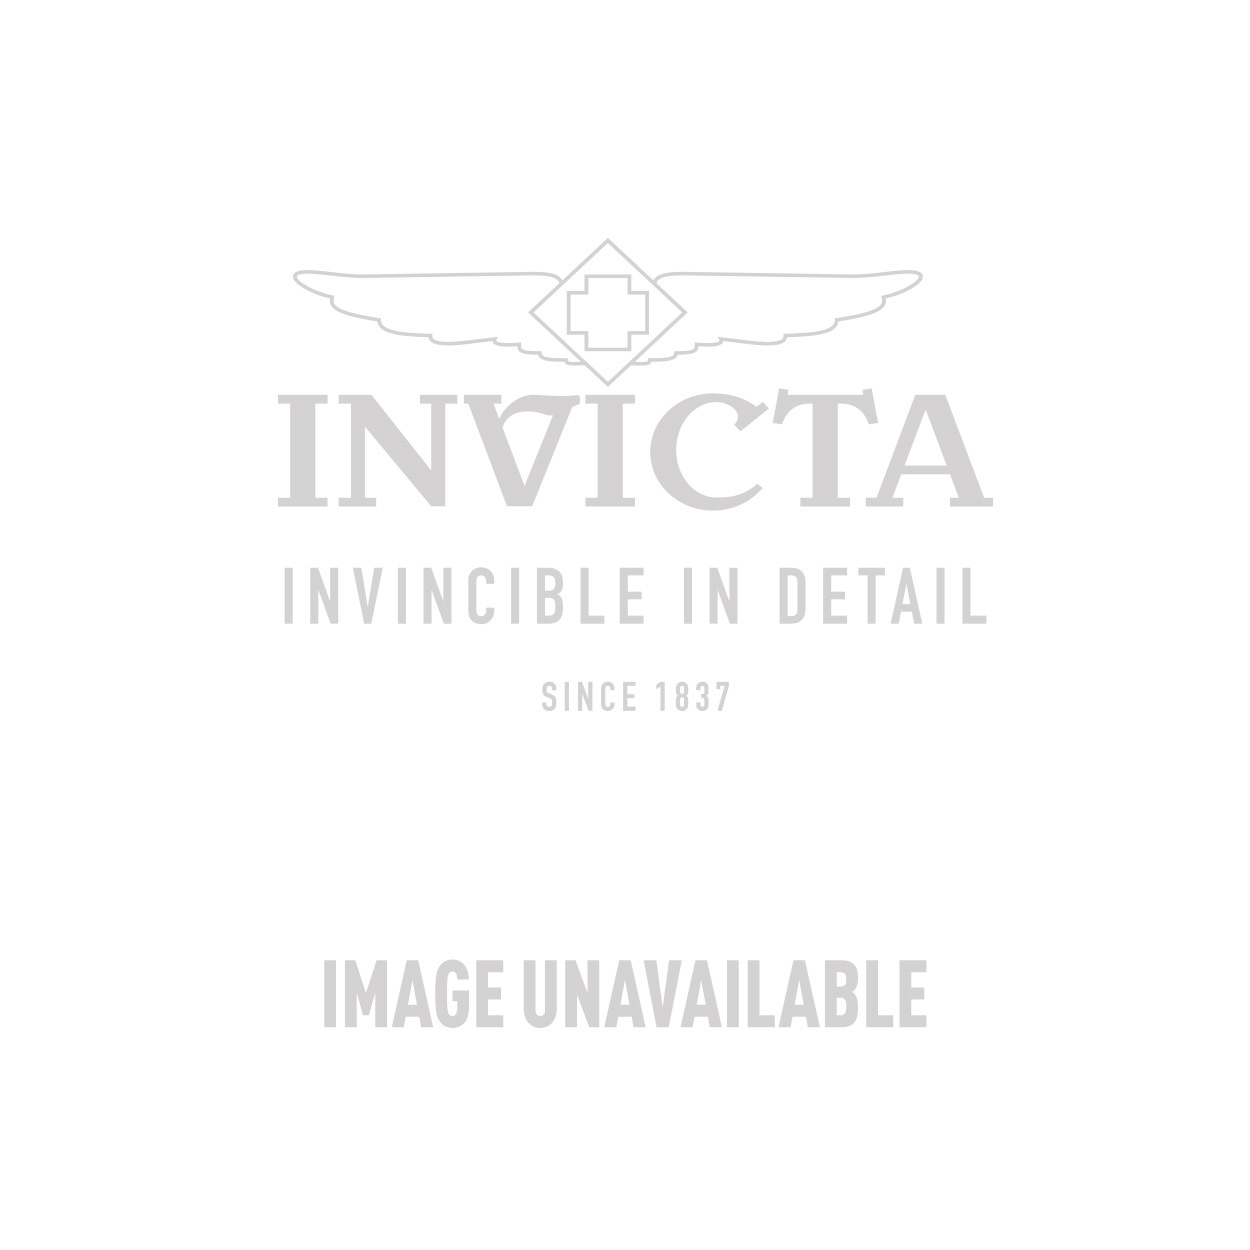 Invicta Venom Automatic Watch - Gold, Stainless Steel case with Black tone Silicone band - Model 19312